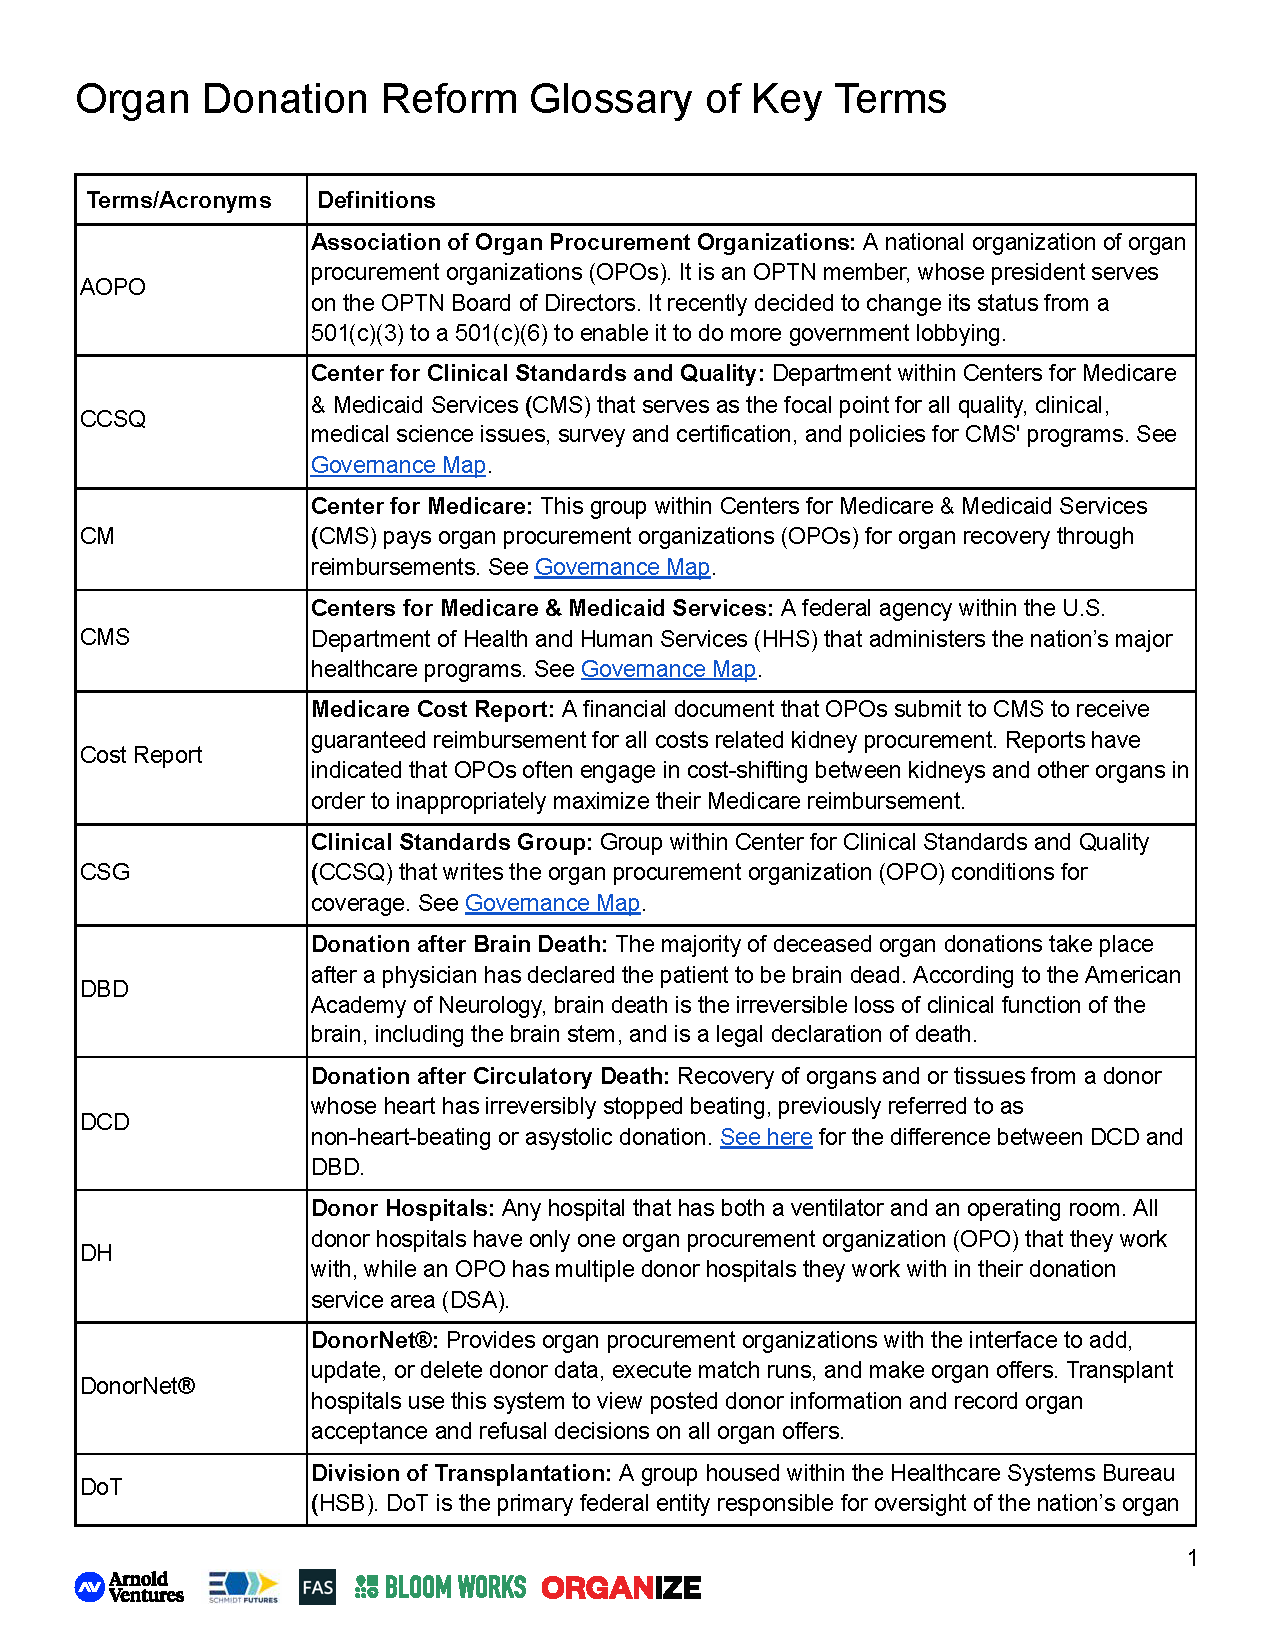 Thumbnail of Appendix C — Glossary of Terms